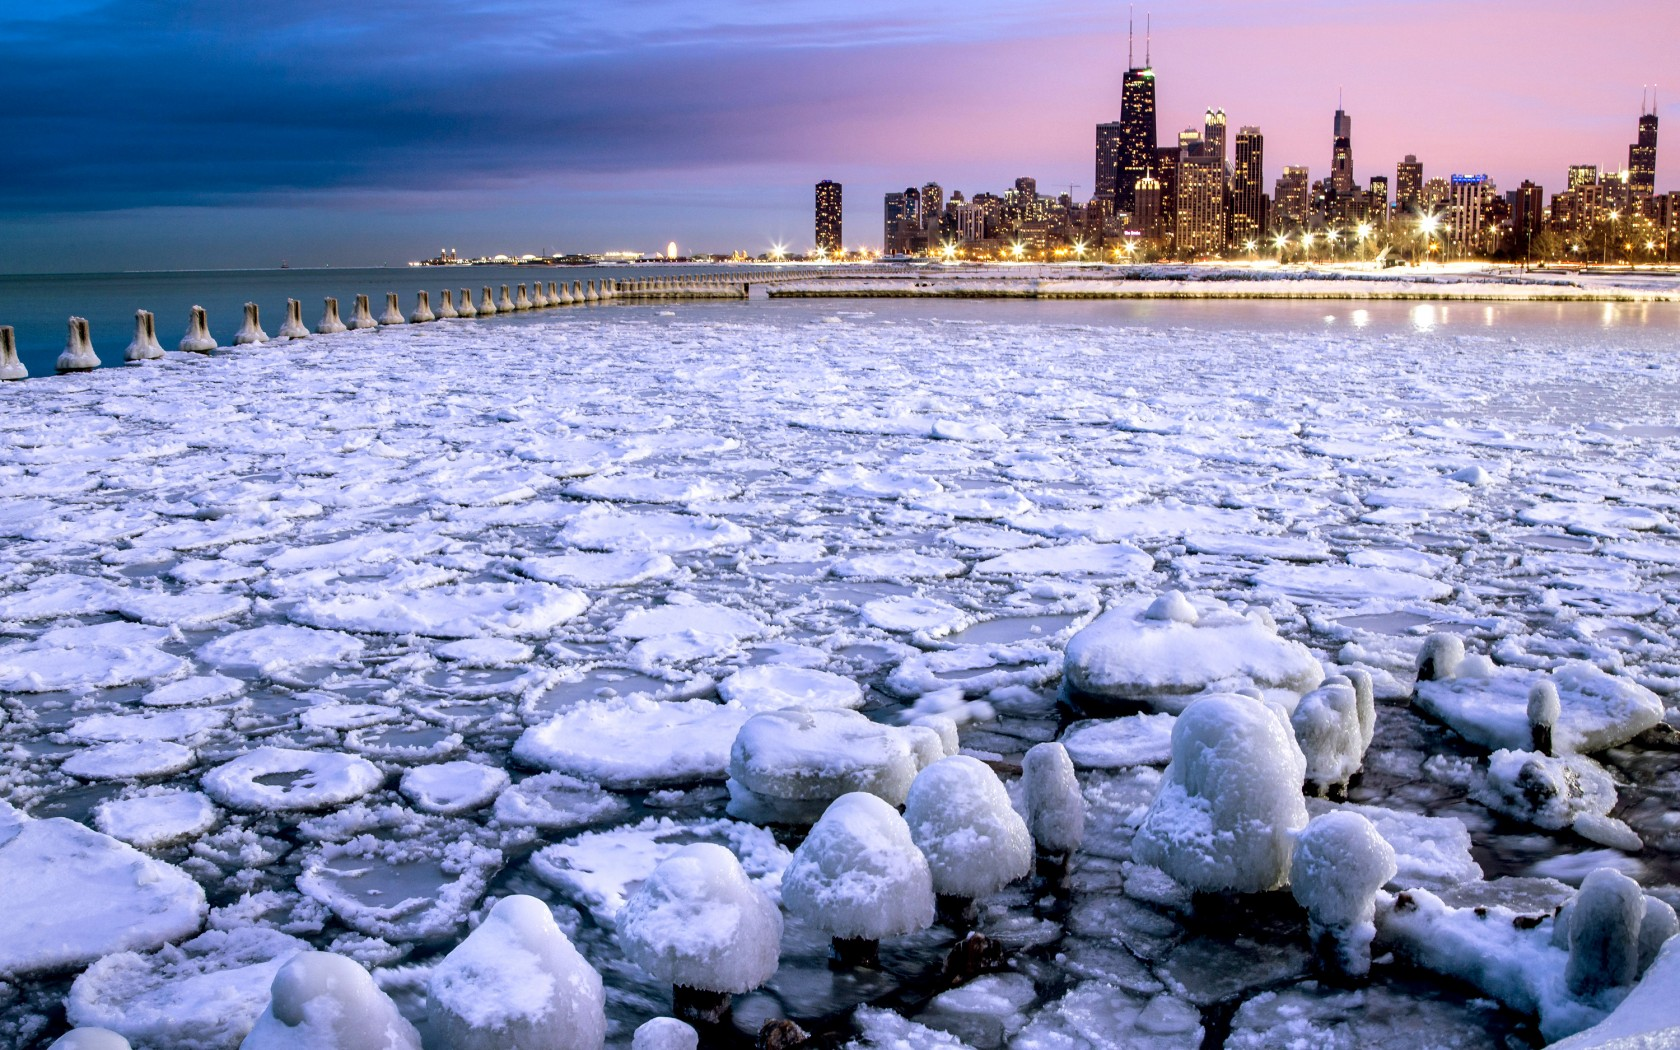 13-chicago-usa-snow-blowing-off-lake-michigan-or-frozen-lake-with-skyscrapers-ea6f78-1680x1050